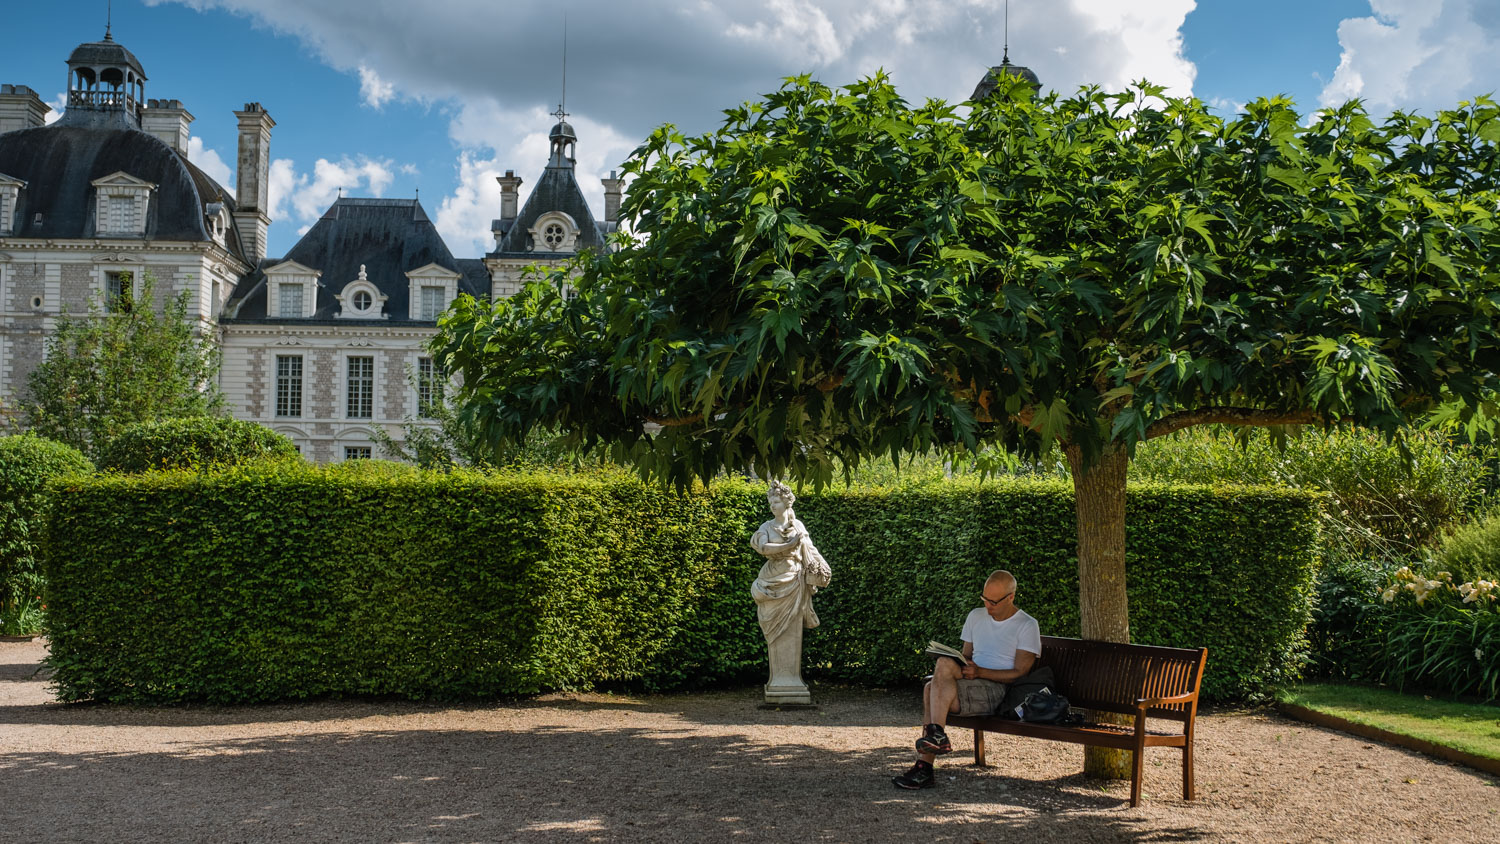 "An artist sketches the garden at the Château de Cheverny, Loire Valley. Travel photography and guide by © Natasha Lequepeys for ""And Then I Met Yoko"". #loirevalley #france #travelguide #photoblog #travelblog #travelphotography #landscapephotography #architecturephotography #travelitinerary #fujifilm #valdeloire #loire #chambord #chenonceau #cheverny #chaumont #chateau #castles #discoverfrance #honeymoondestination"